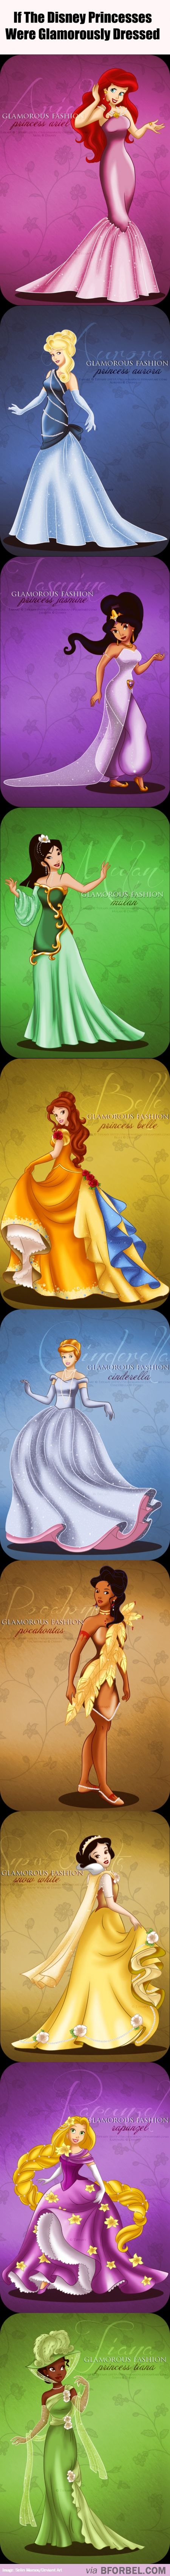 freeze shoes apparel  Glamorously Dressed Disney Princesses